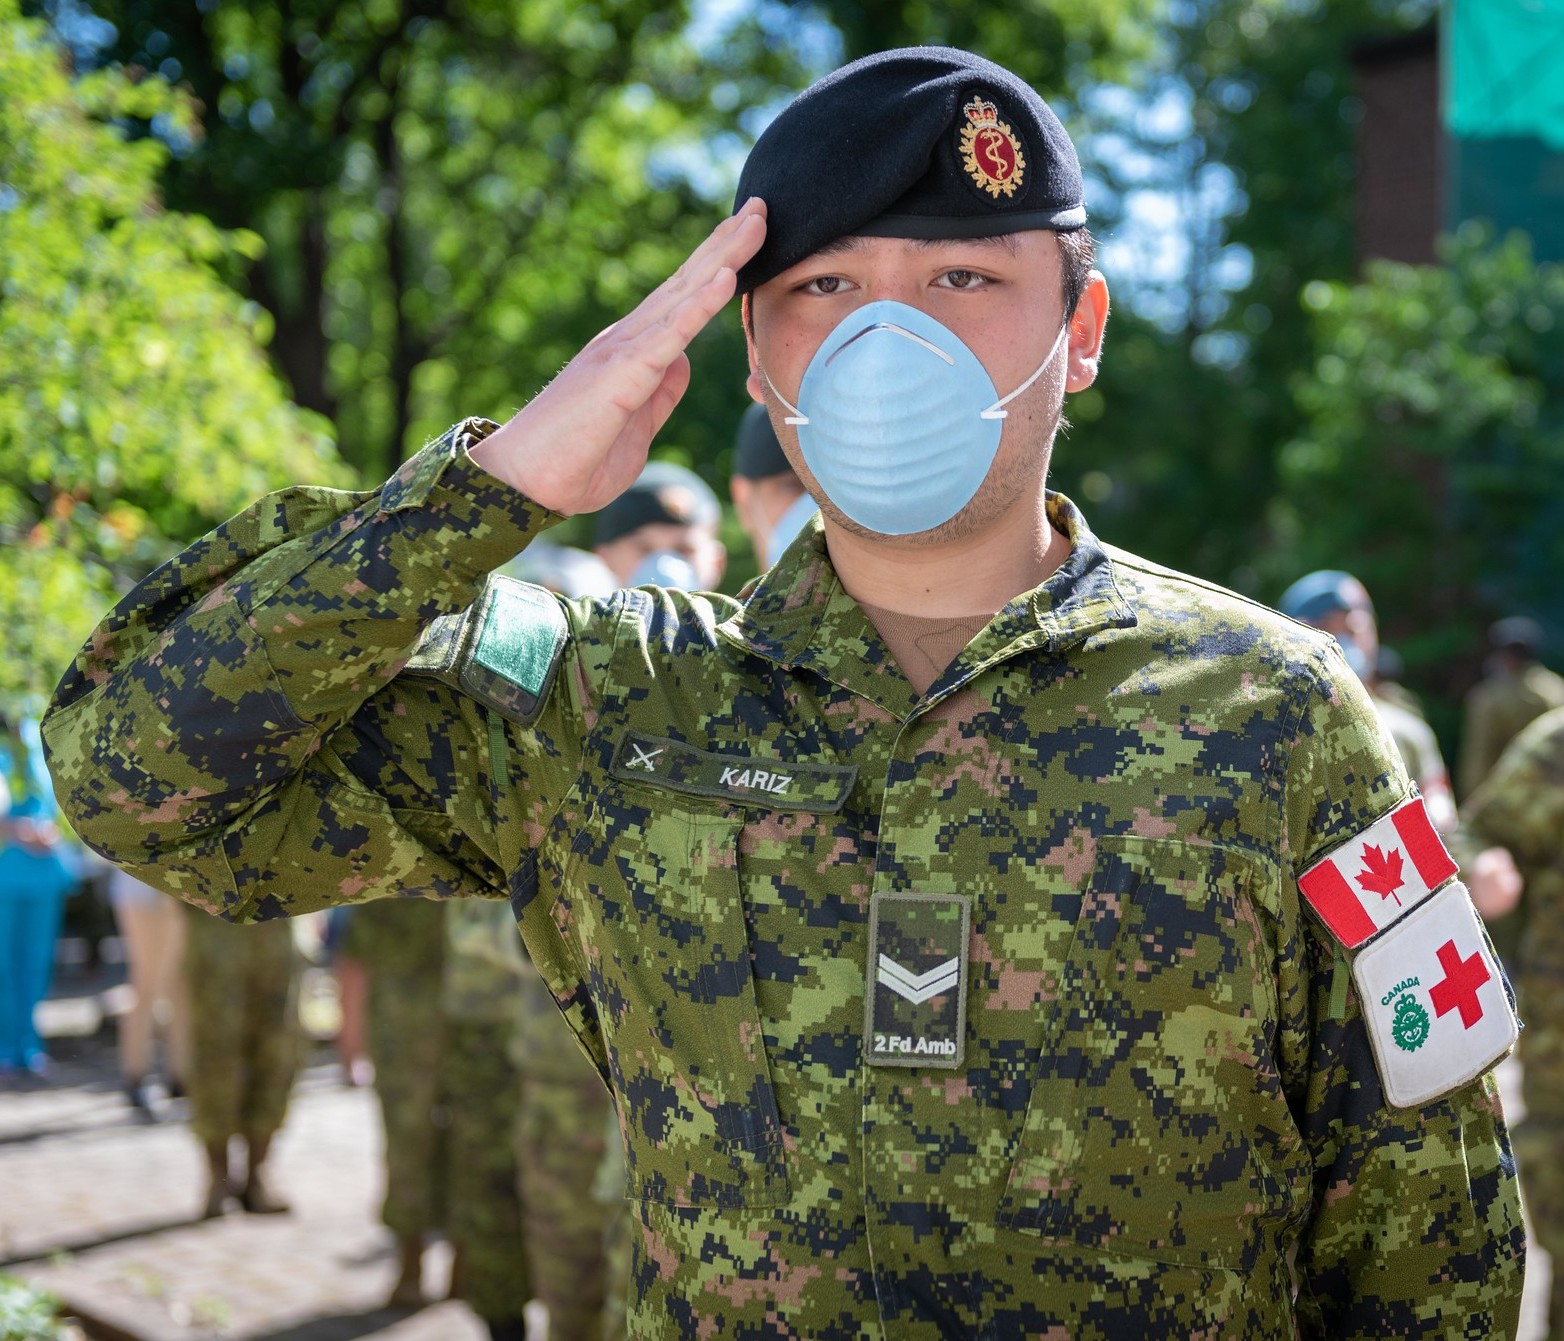 medical technician from 2nd Field Ambulance, salutes during a departure ceremony at a long-term care facility in Montreal, QC